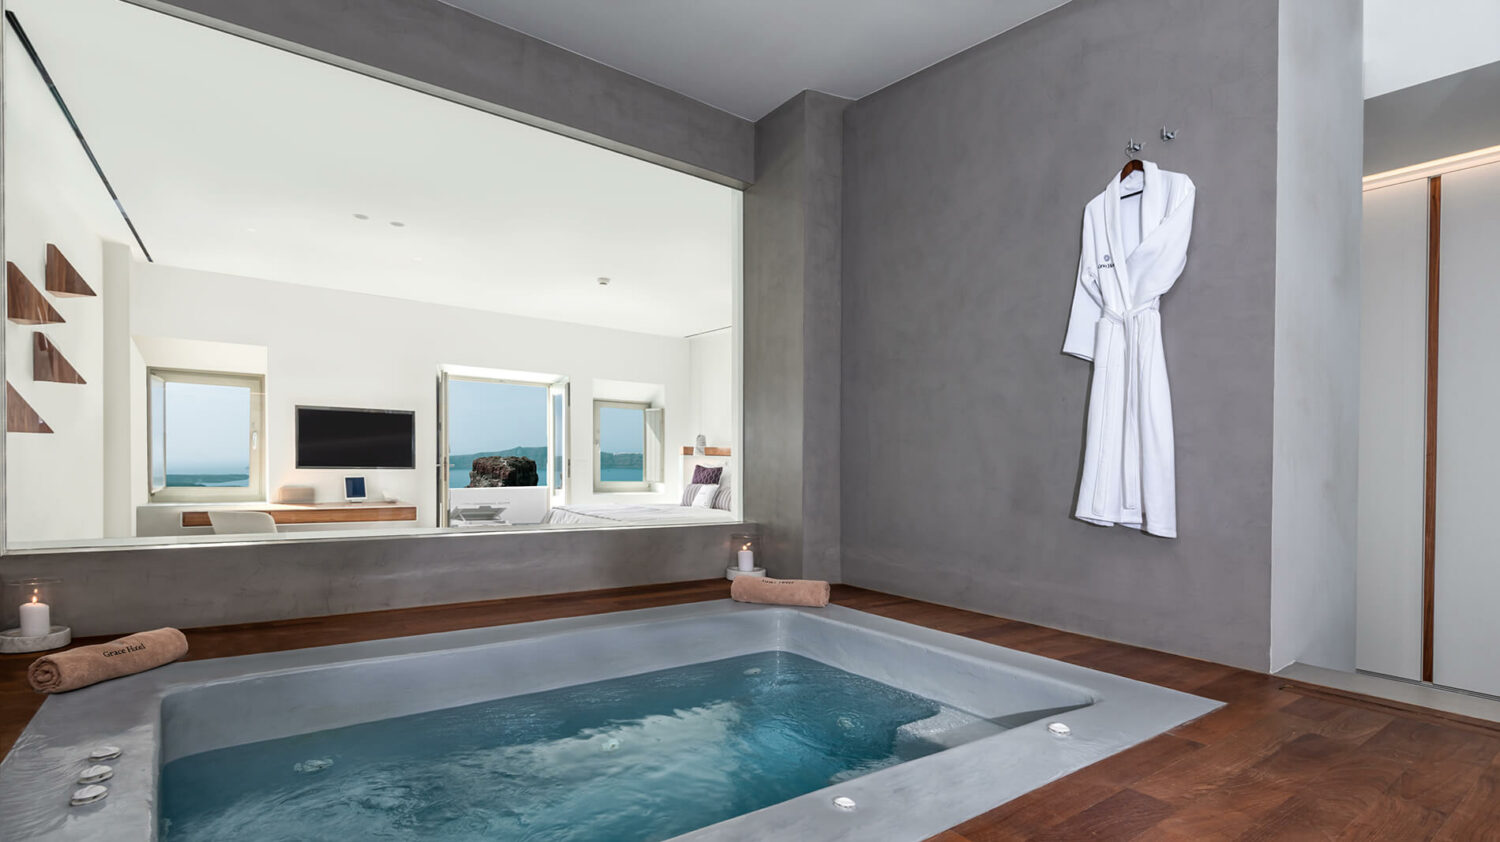 grace hotel, auberge resorts collection greece-jacuzzi